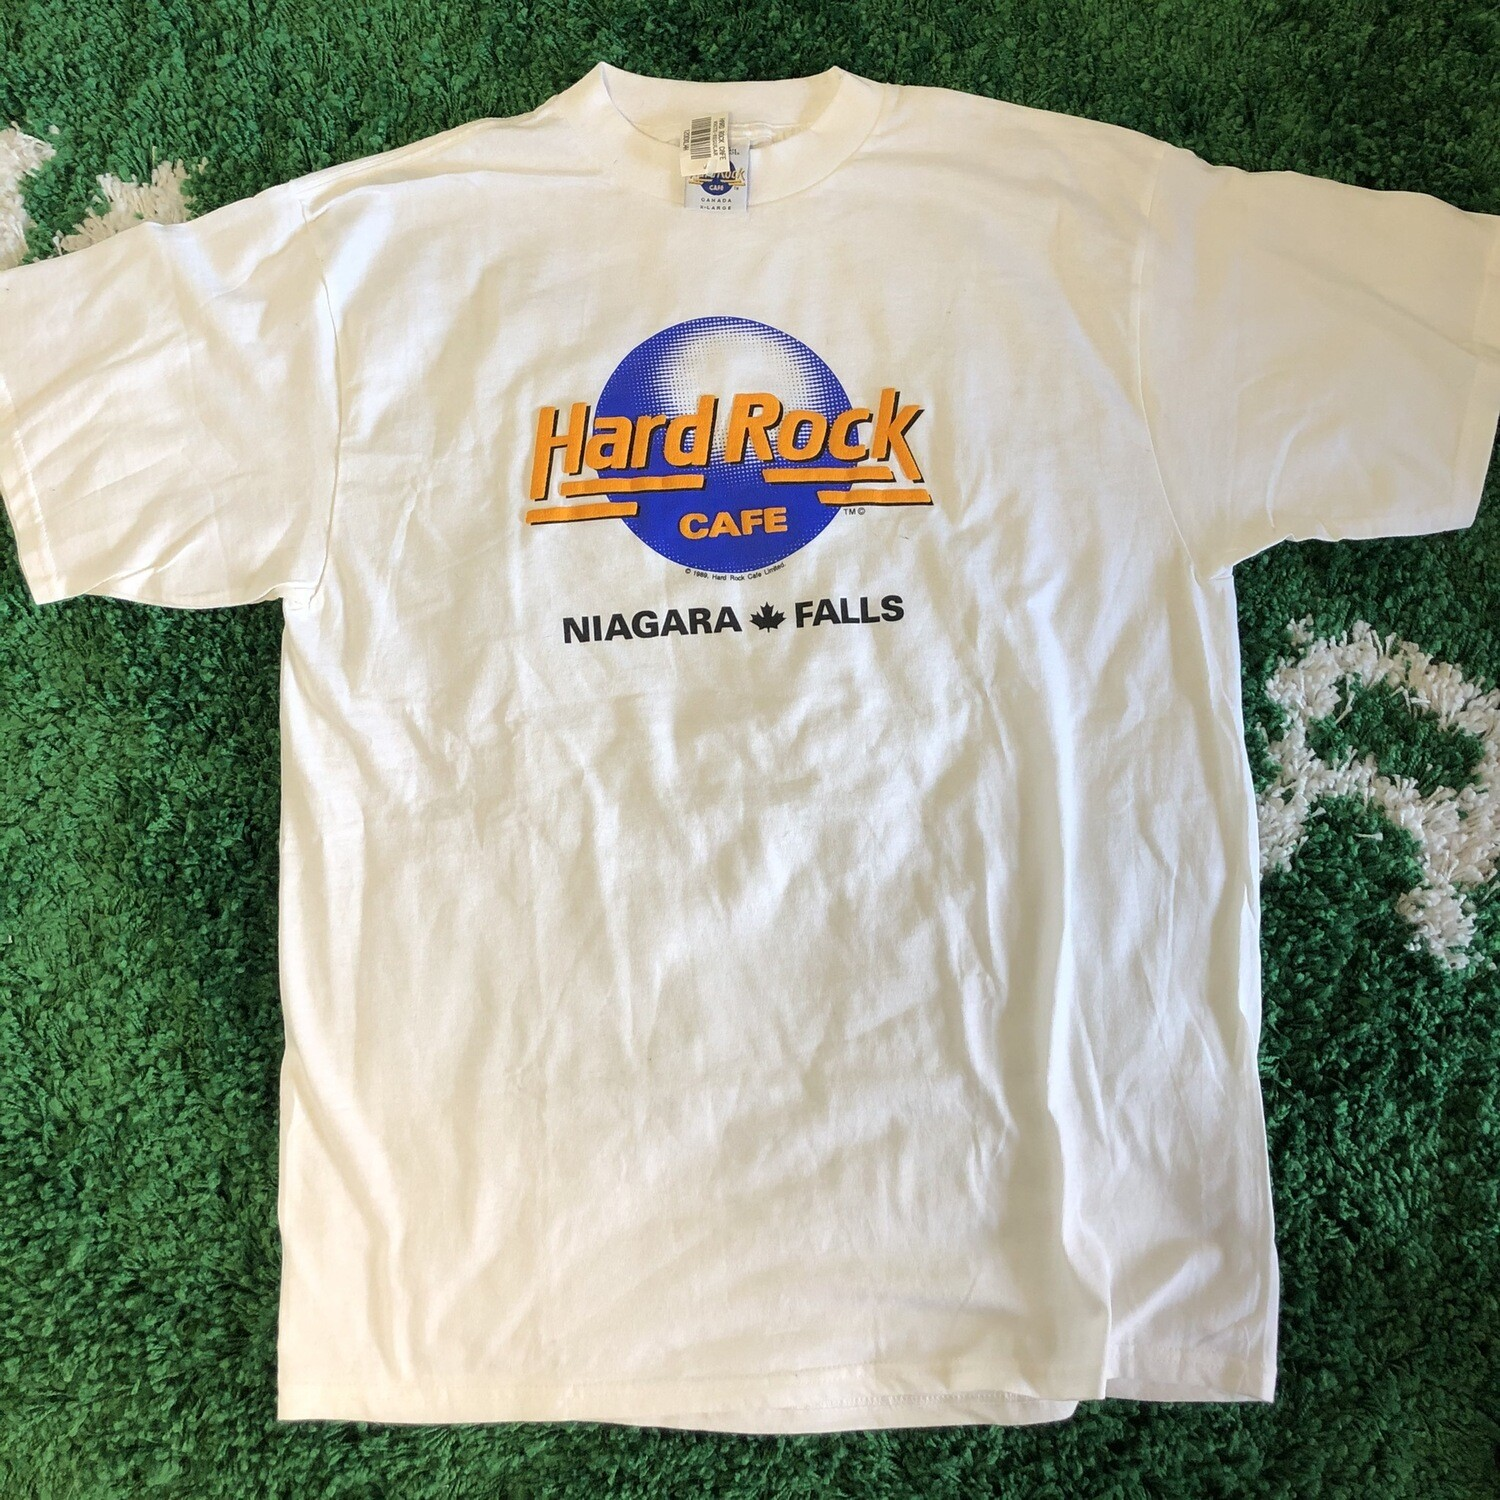 Hard Rock Cafe Niagara Falls 1989 T-Shirt Size XL